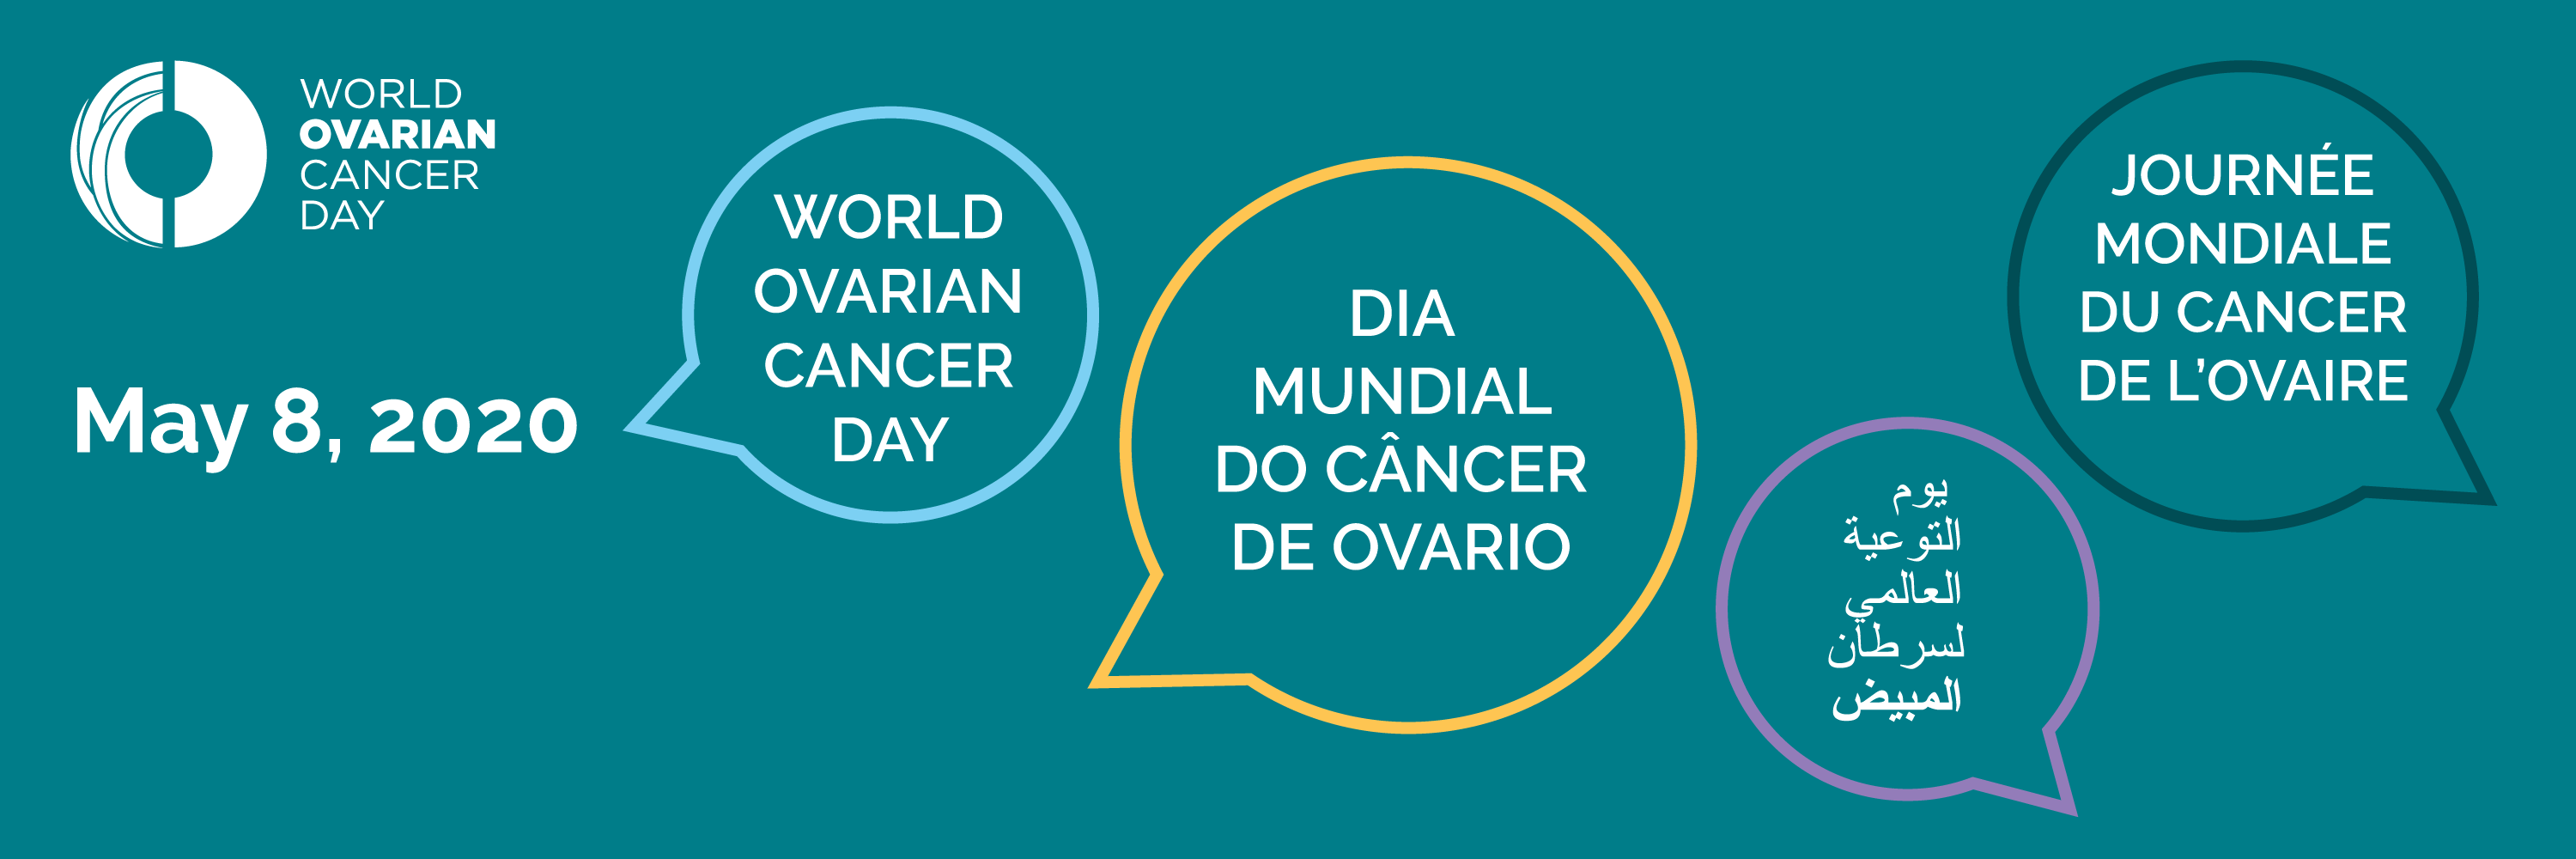 World Ovarian Cancer Day May 8th World Ovarian Cancer Coalition